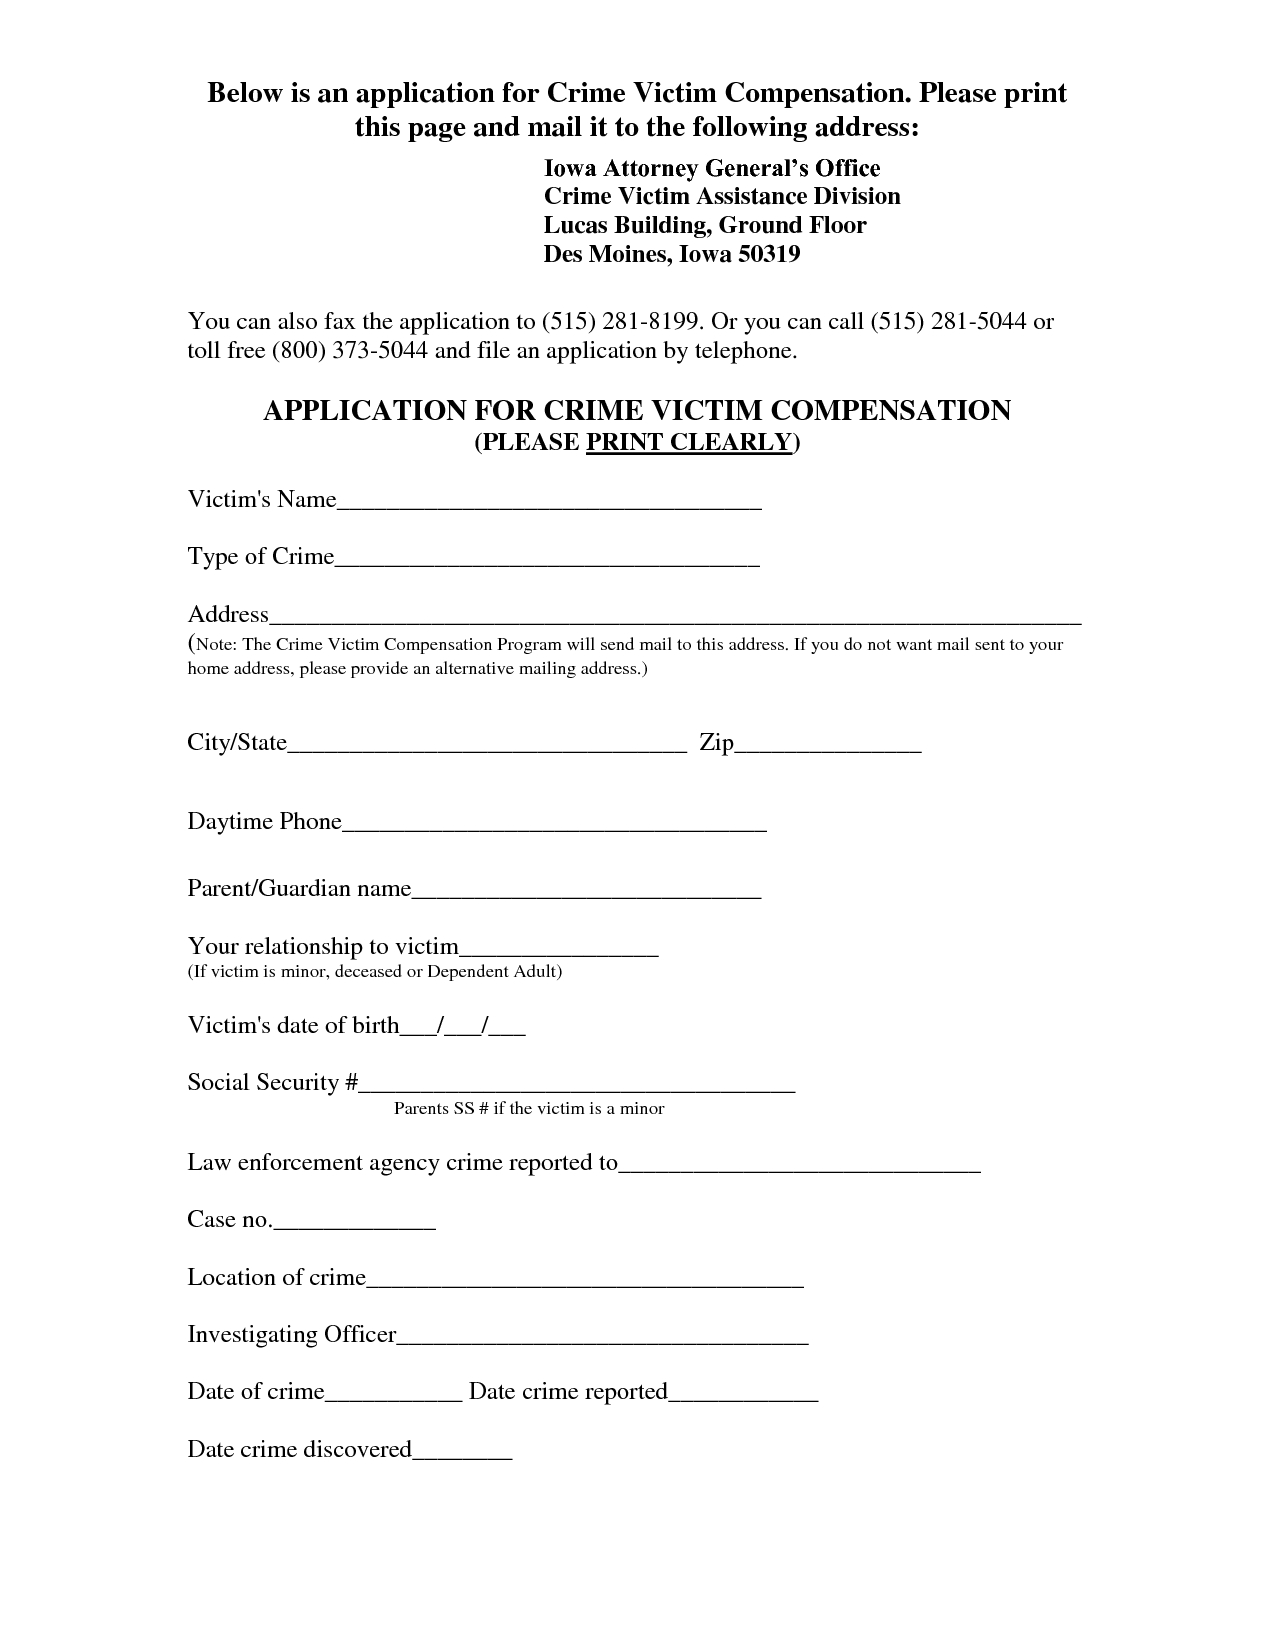 Print Out Fake Doctors Note | Doctors Notes Printable For Employer - Printable Fake Doctors Notes Free